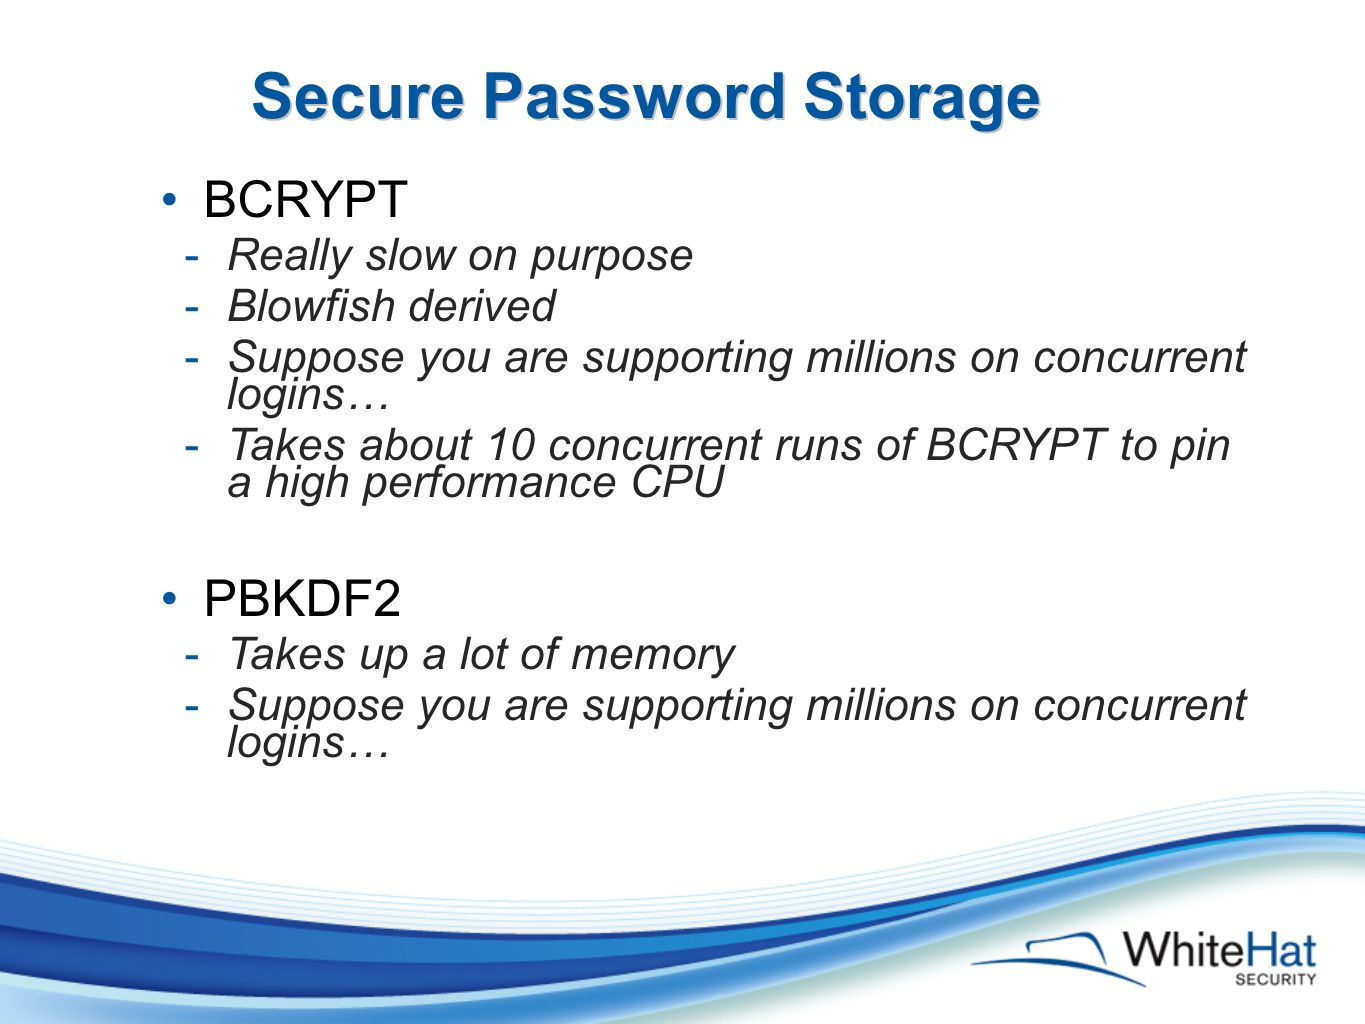 Secure Password Storage BCRYPT -Really slow on purpose -Blowfish derived -Suppose you are supporting millions on concurrent logins… -Takes about 10 concurrent runs of BCRYPT to pin a high performance CPU PBKDF2 -Takes up a lot of memory -Suppose you are supporting millions on concurrent logins…